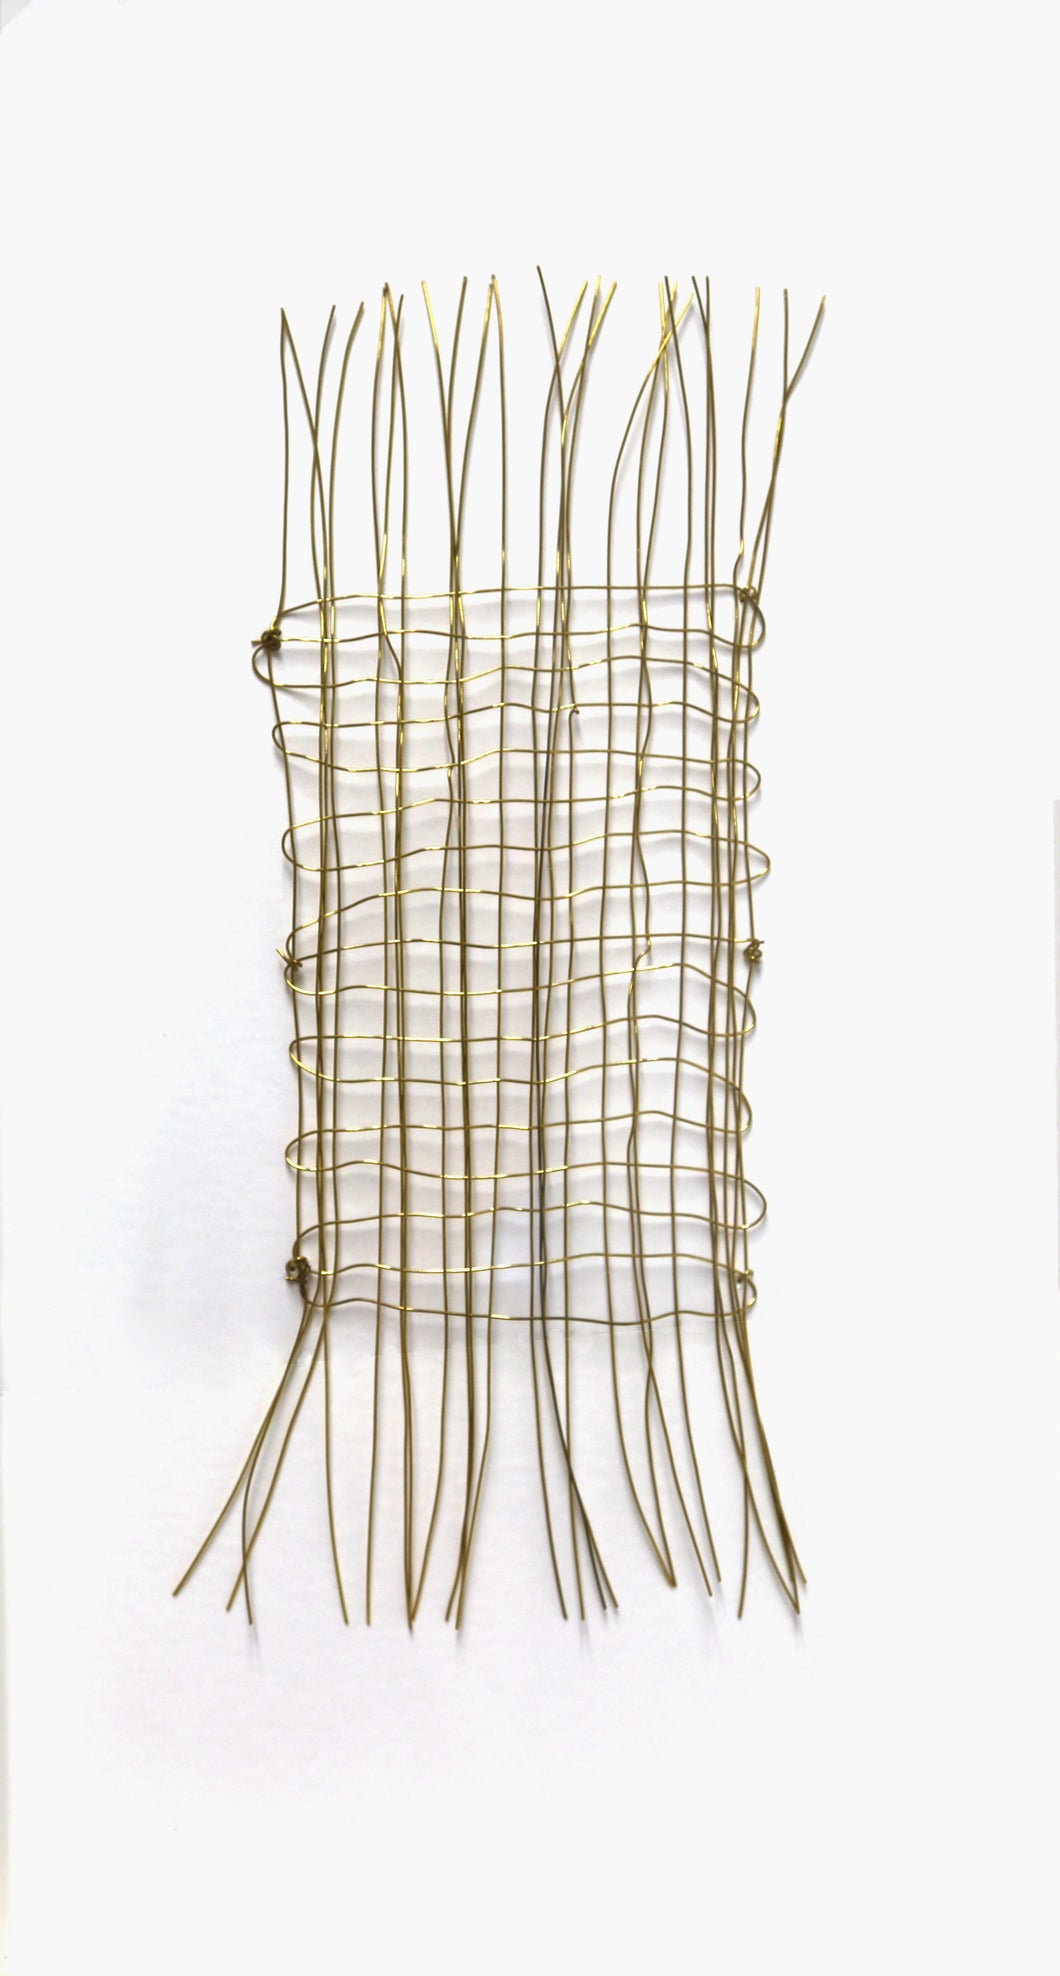 Poppy Kural, Crossed Wires, 2019, $520 AUD